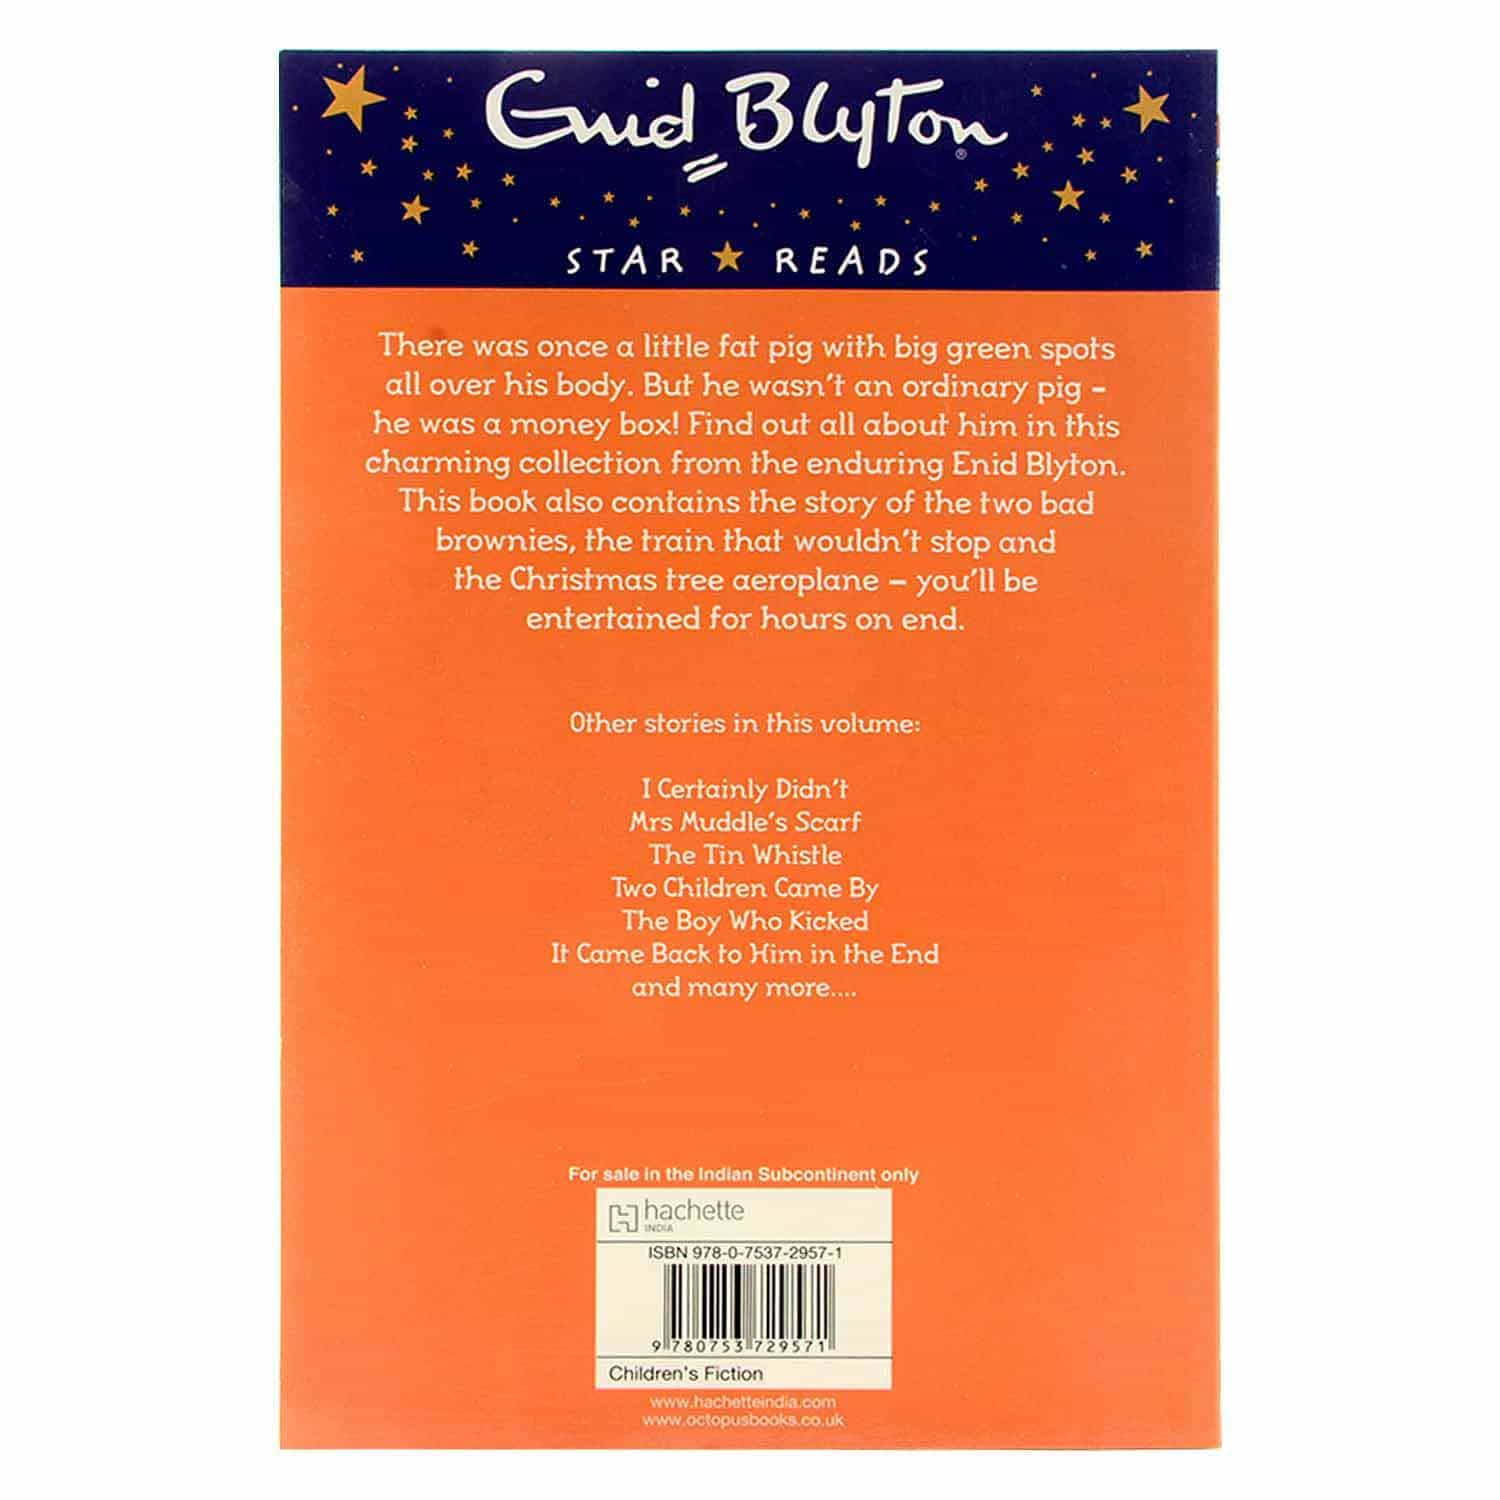 Enid Blyton - The Pig with Green Spots and Other Stories